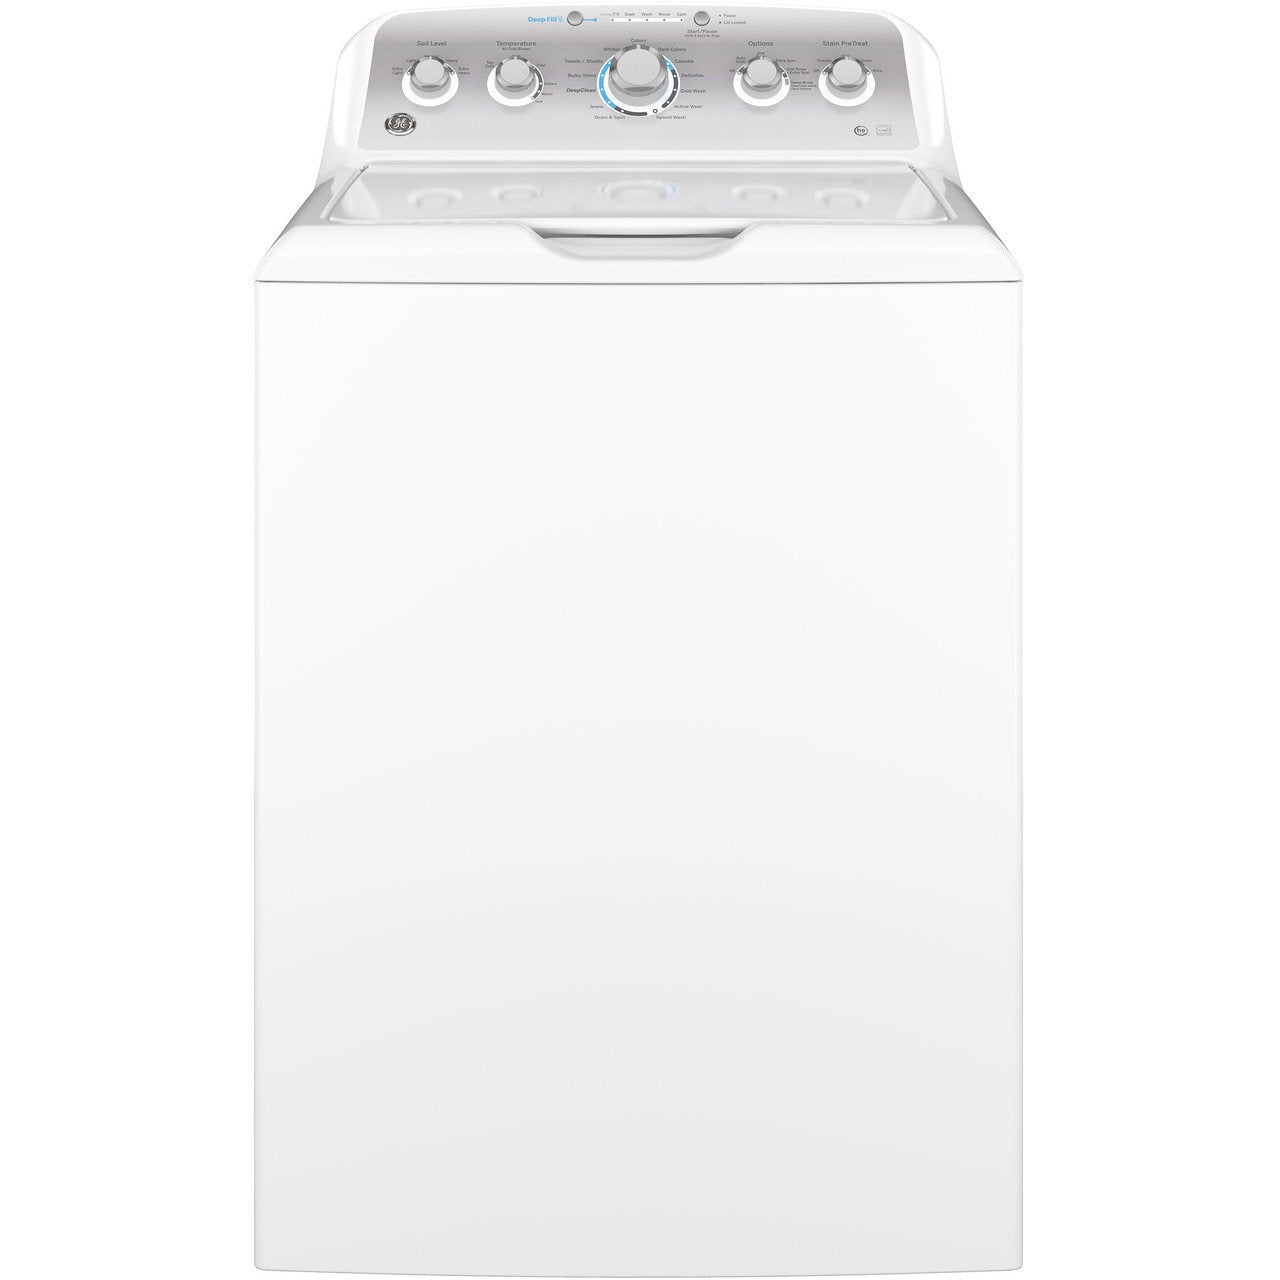 GE® 4.6 cu. ft. Capacity Washer with Stainless Steel Basket - Casa Muebles